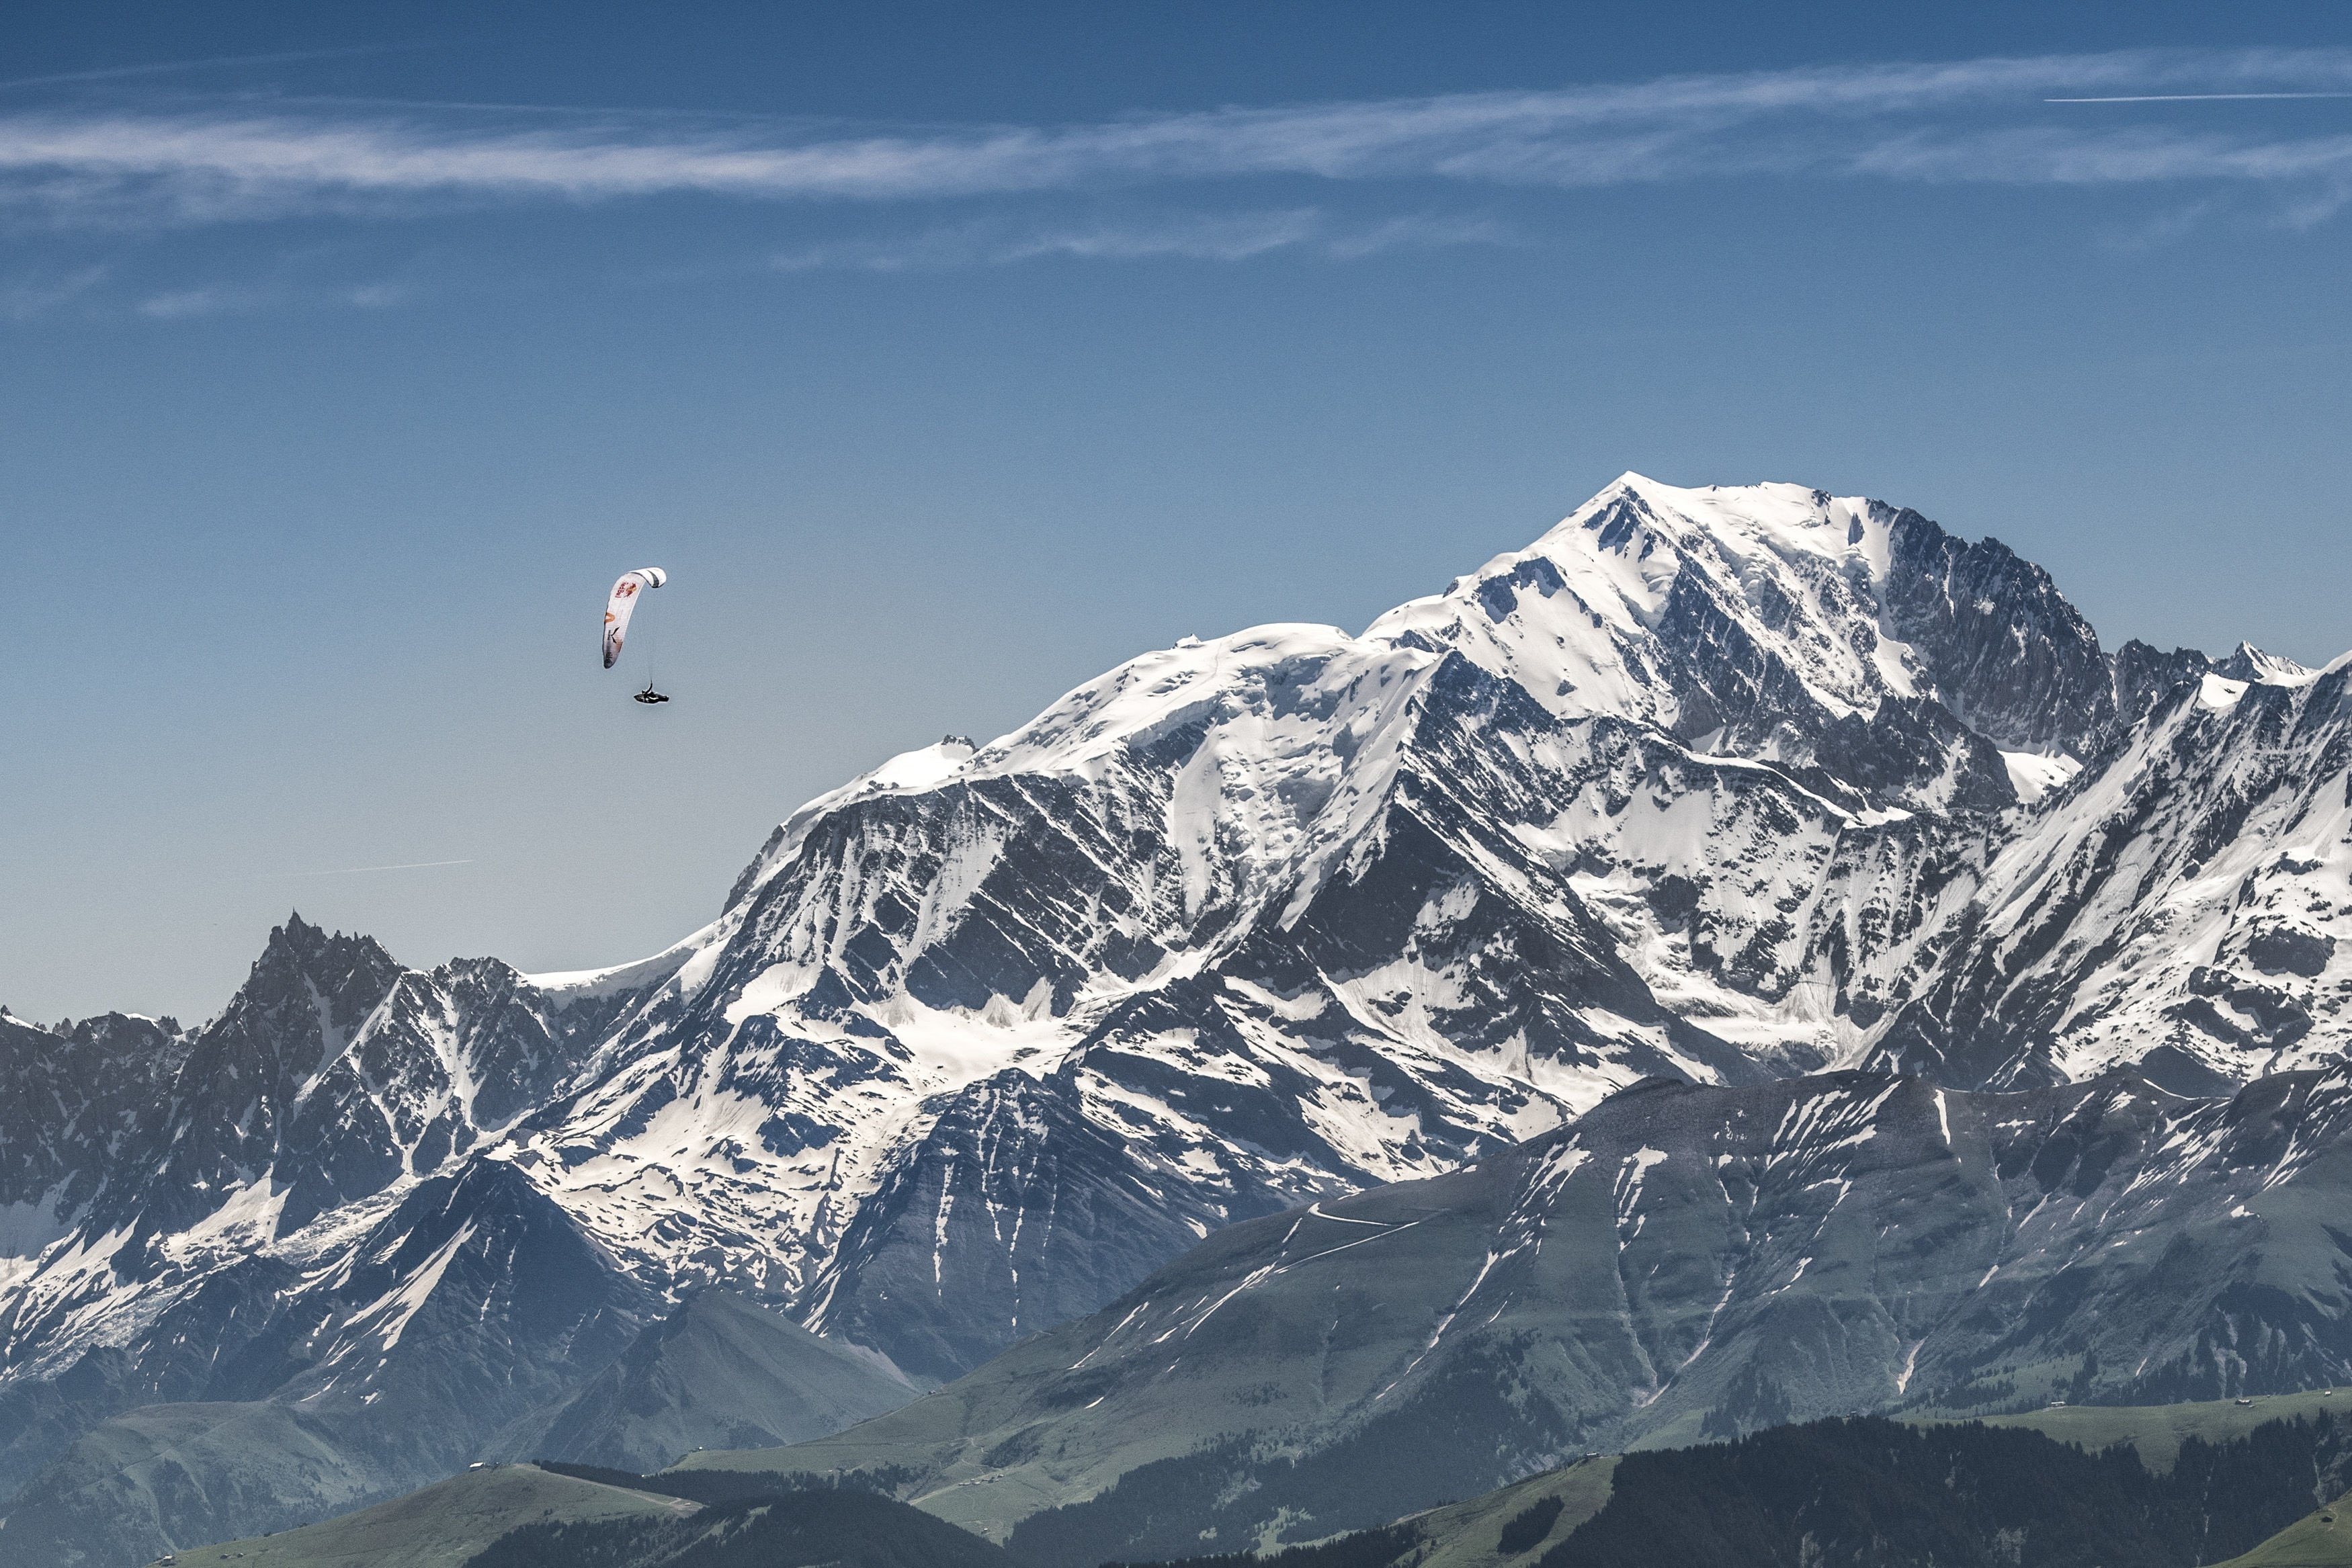 Paul Guschlbauer (AUT1) races during the Red Bull X-Alps next to Mont Blanc, France on June 23, 2019.